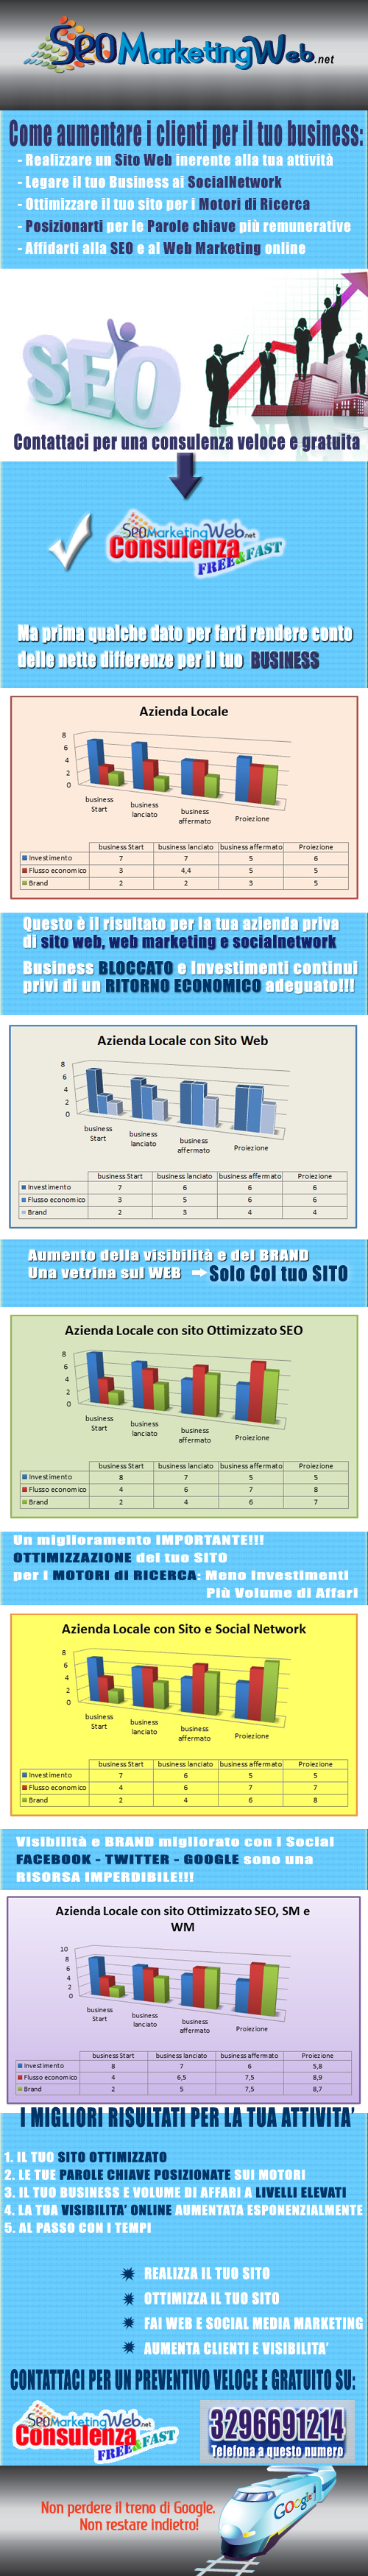 SEO e Web Marketing, Advert-Infografica di SMWnet